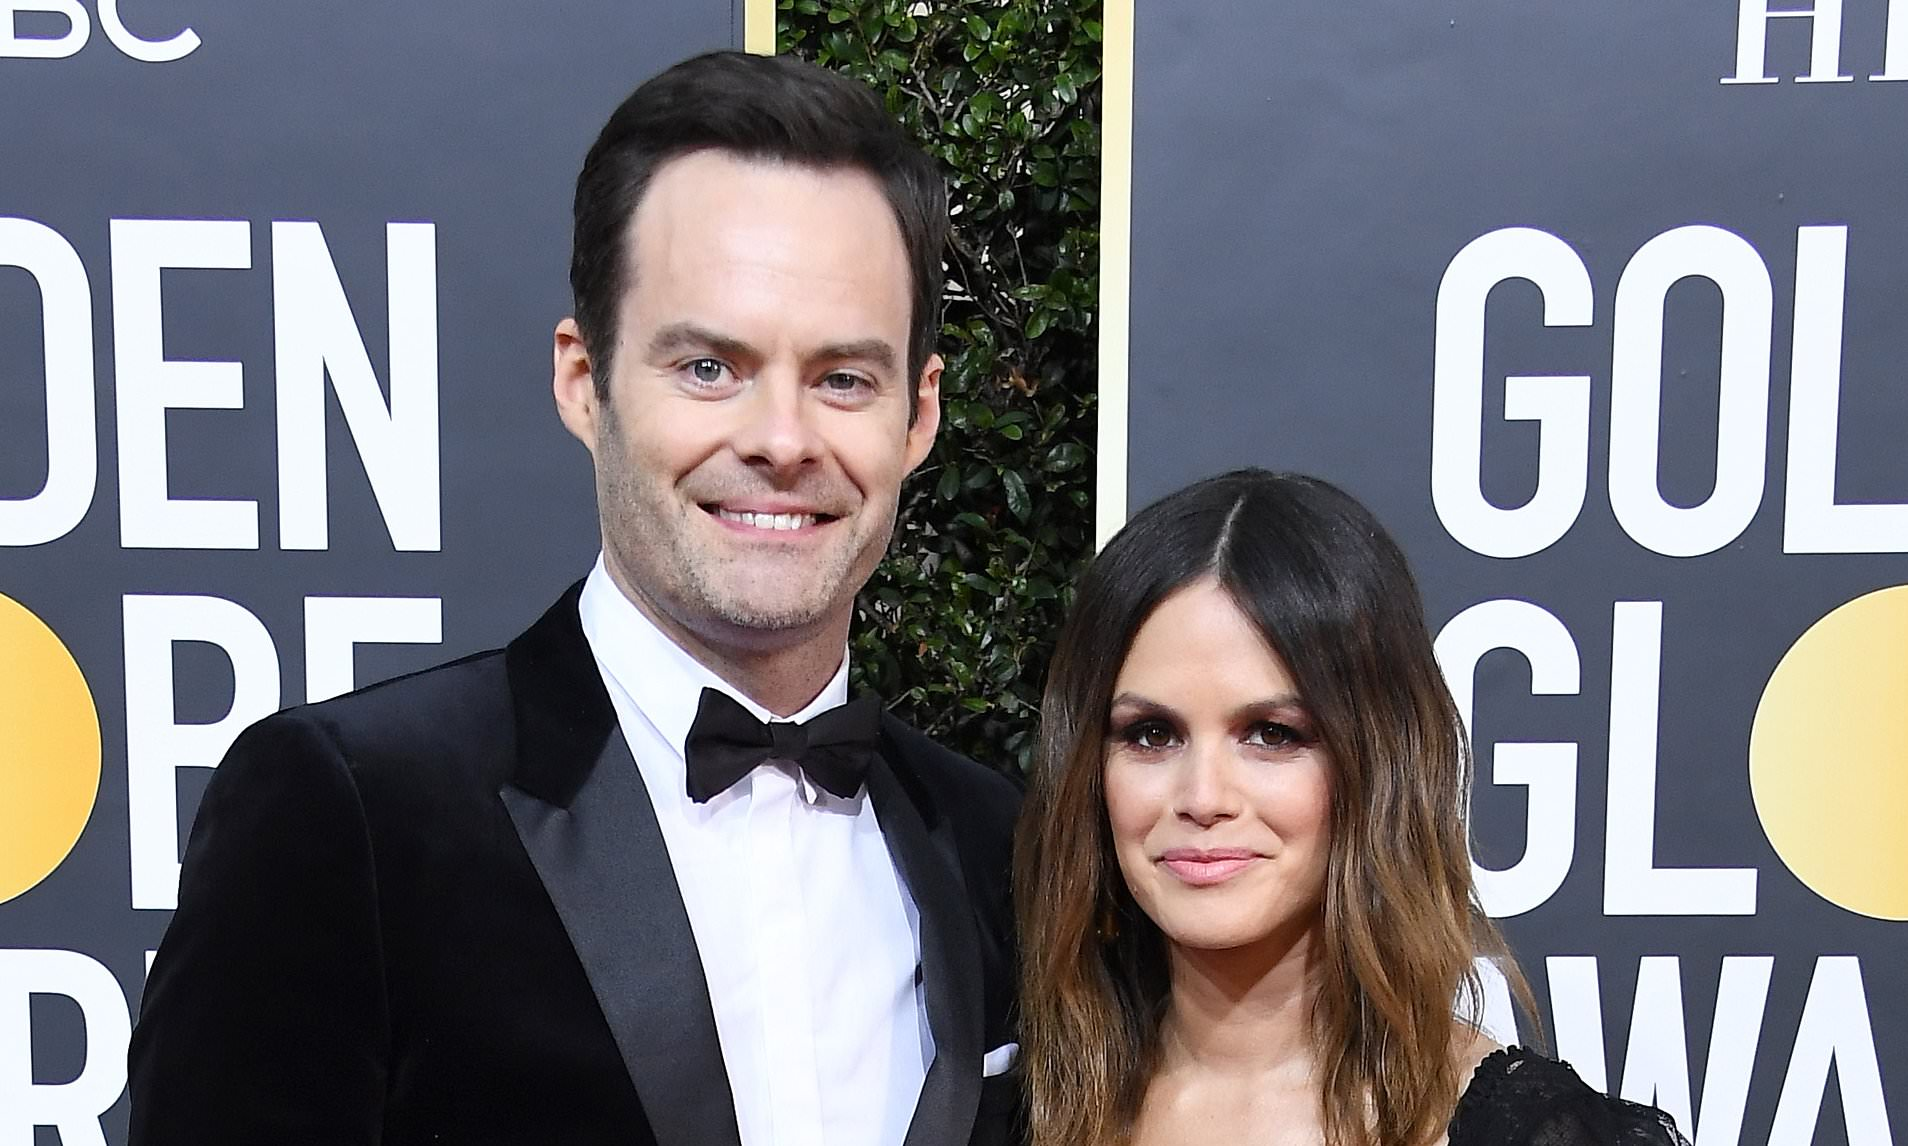 Rachel Bilson and Bill Hader Broken Up after going public with Their Six Months of Relationship